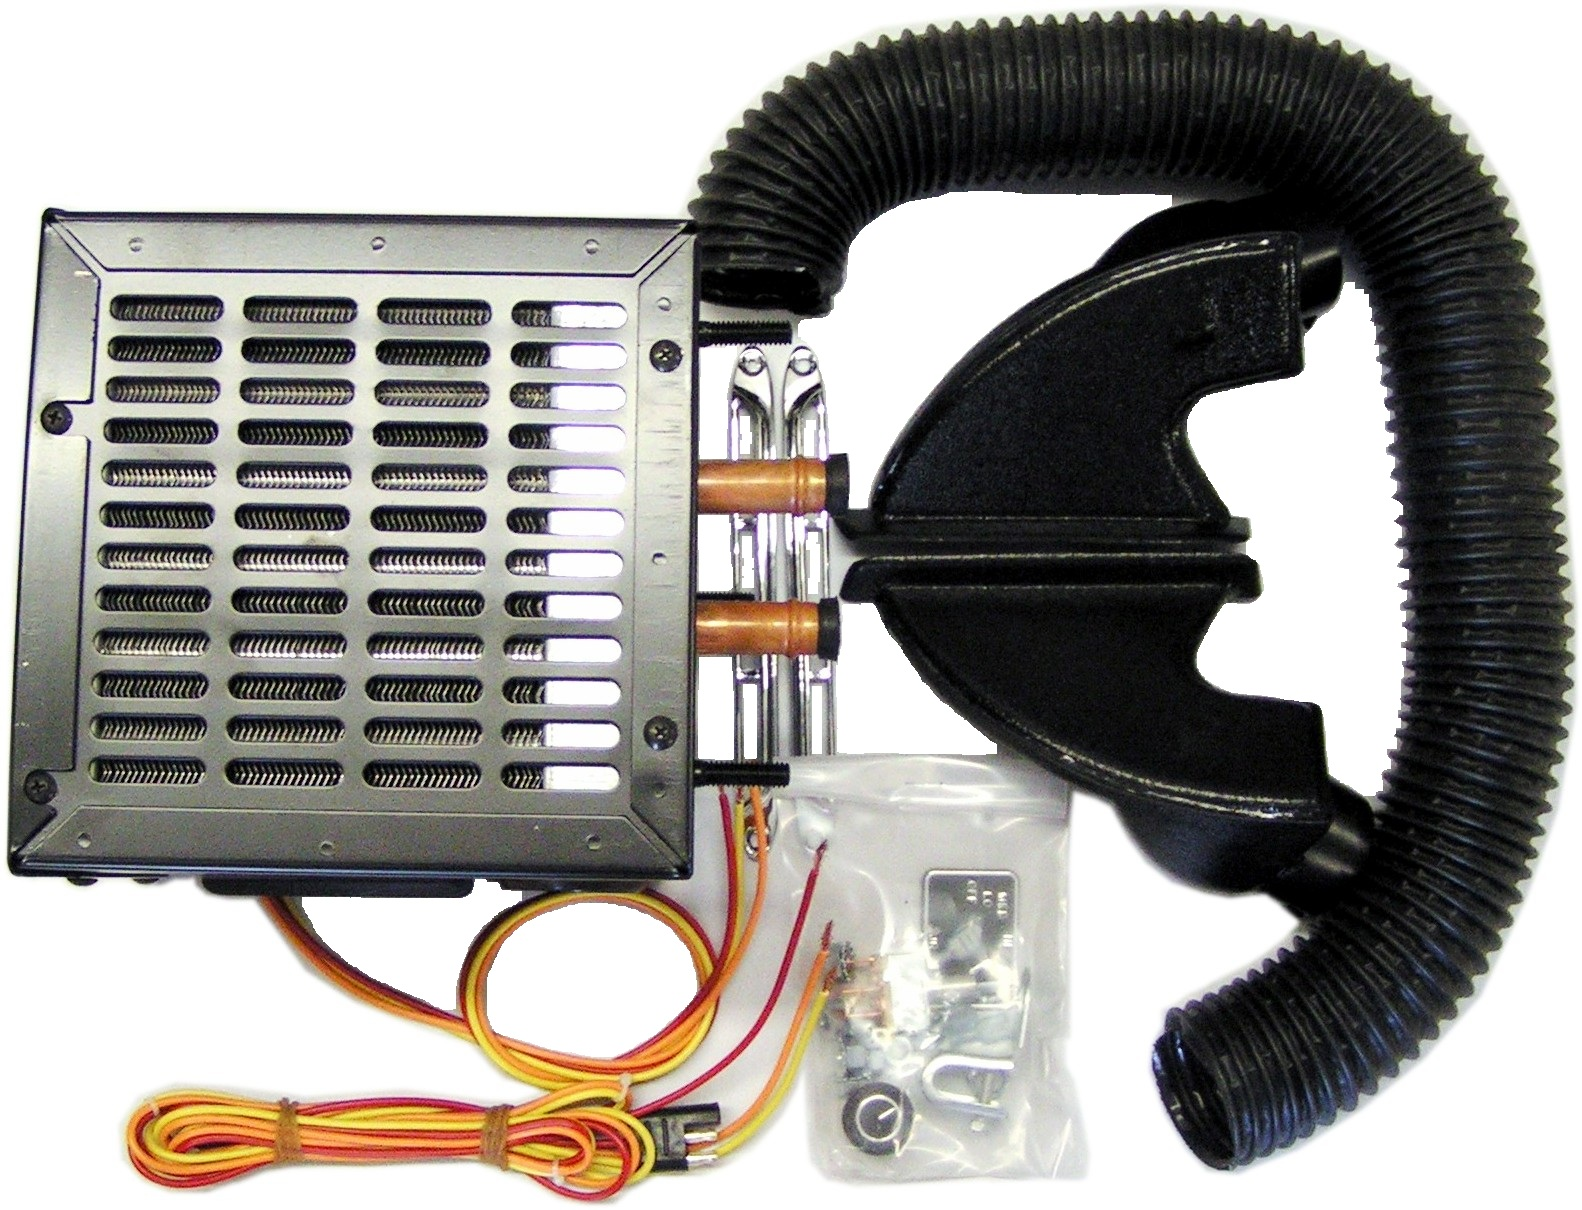 Heater Kit with Ducts, Grills, 3 speed Fan